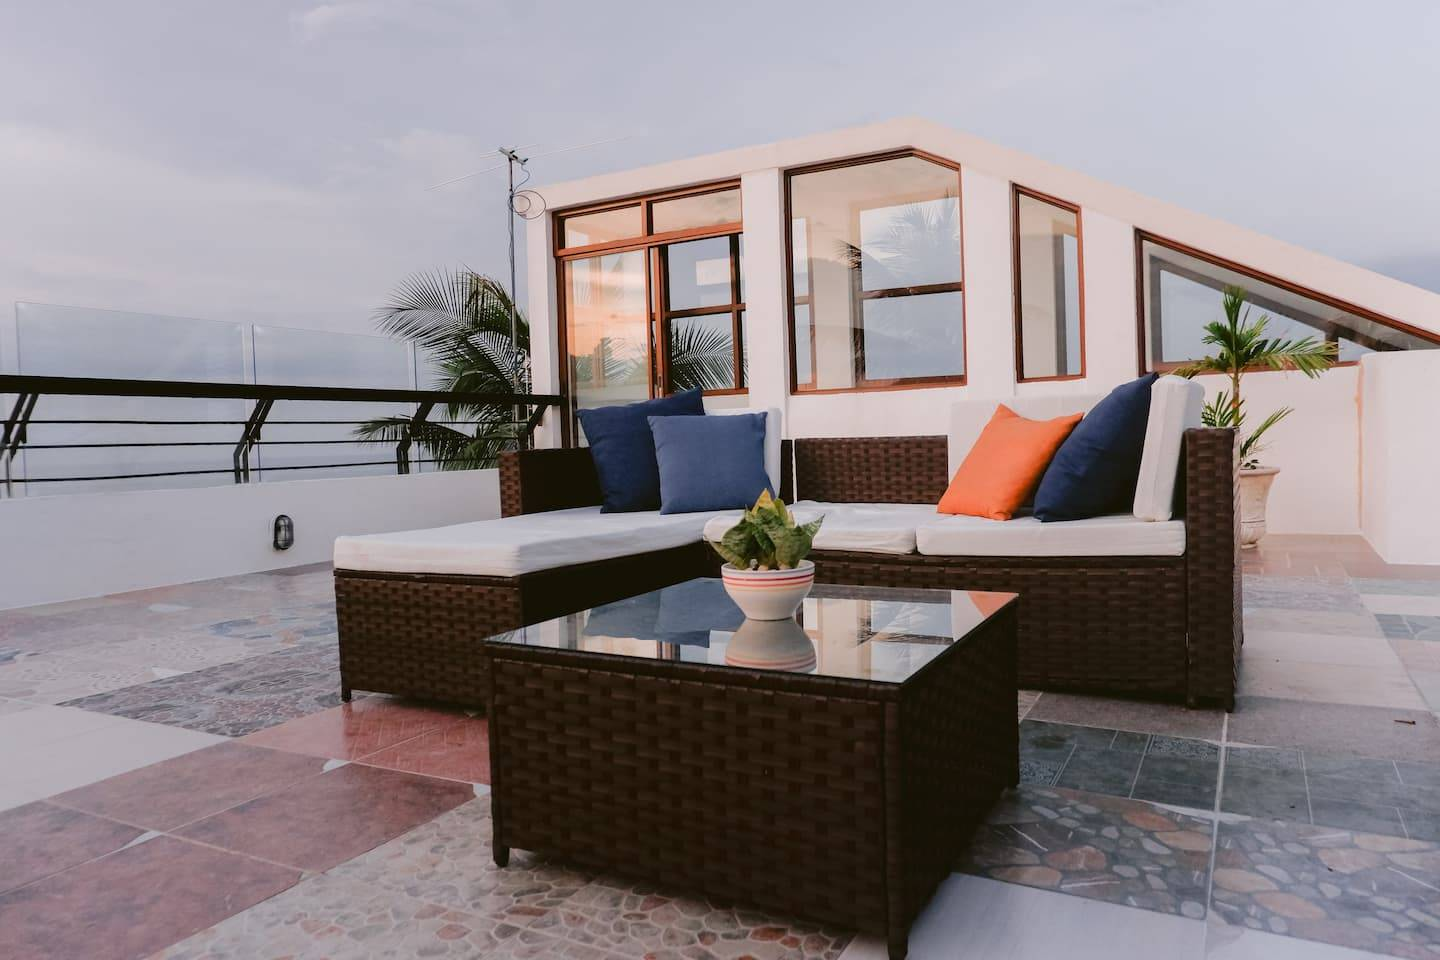 The Glass House - Beachfront Vacation Home Philippines Airbnb